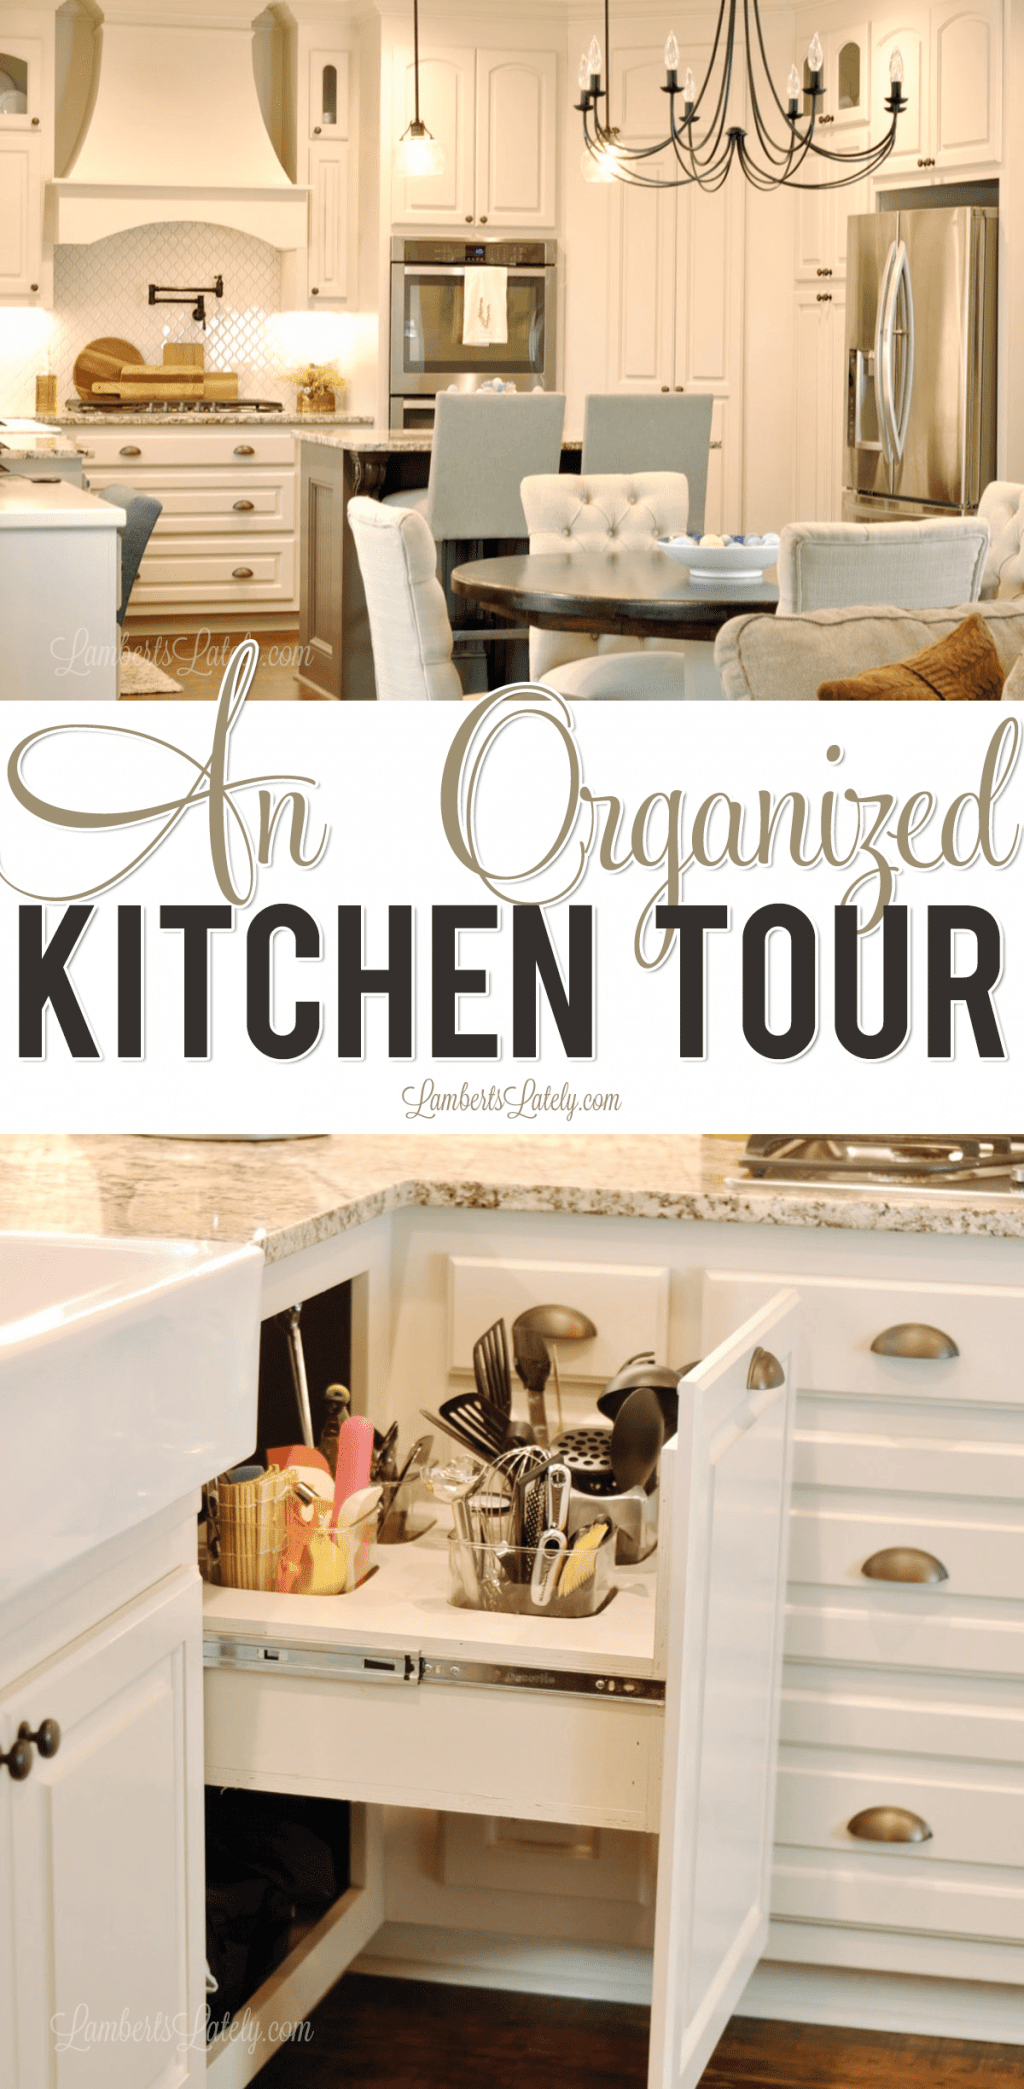 Check out this organized kitchen, complete with storage ideas, ways to declutter your cabinets and drawers, and custom cabinet designs that will maximize your space!